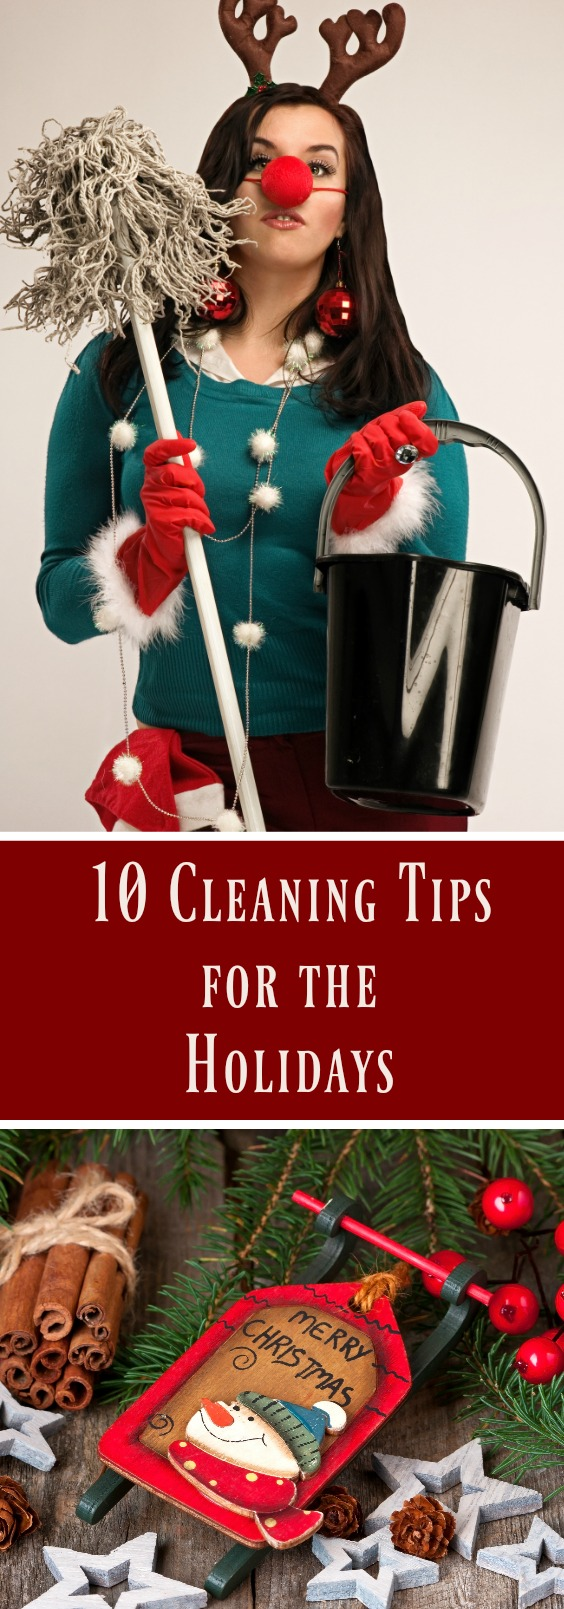 10 Cleaning Tips for the Holidays // thislilpiglet.net